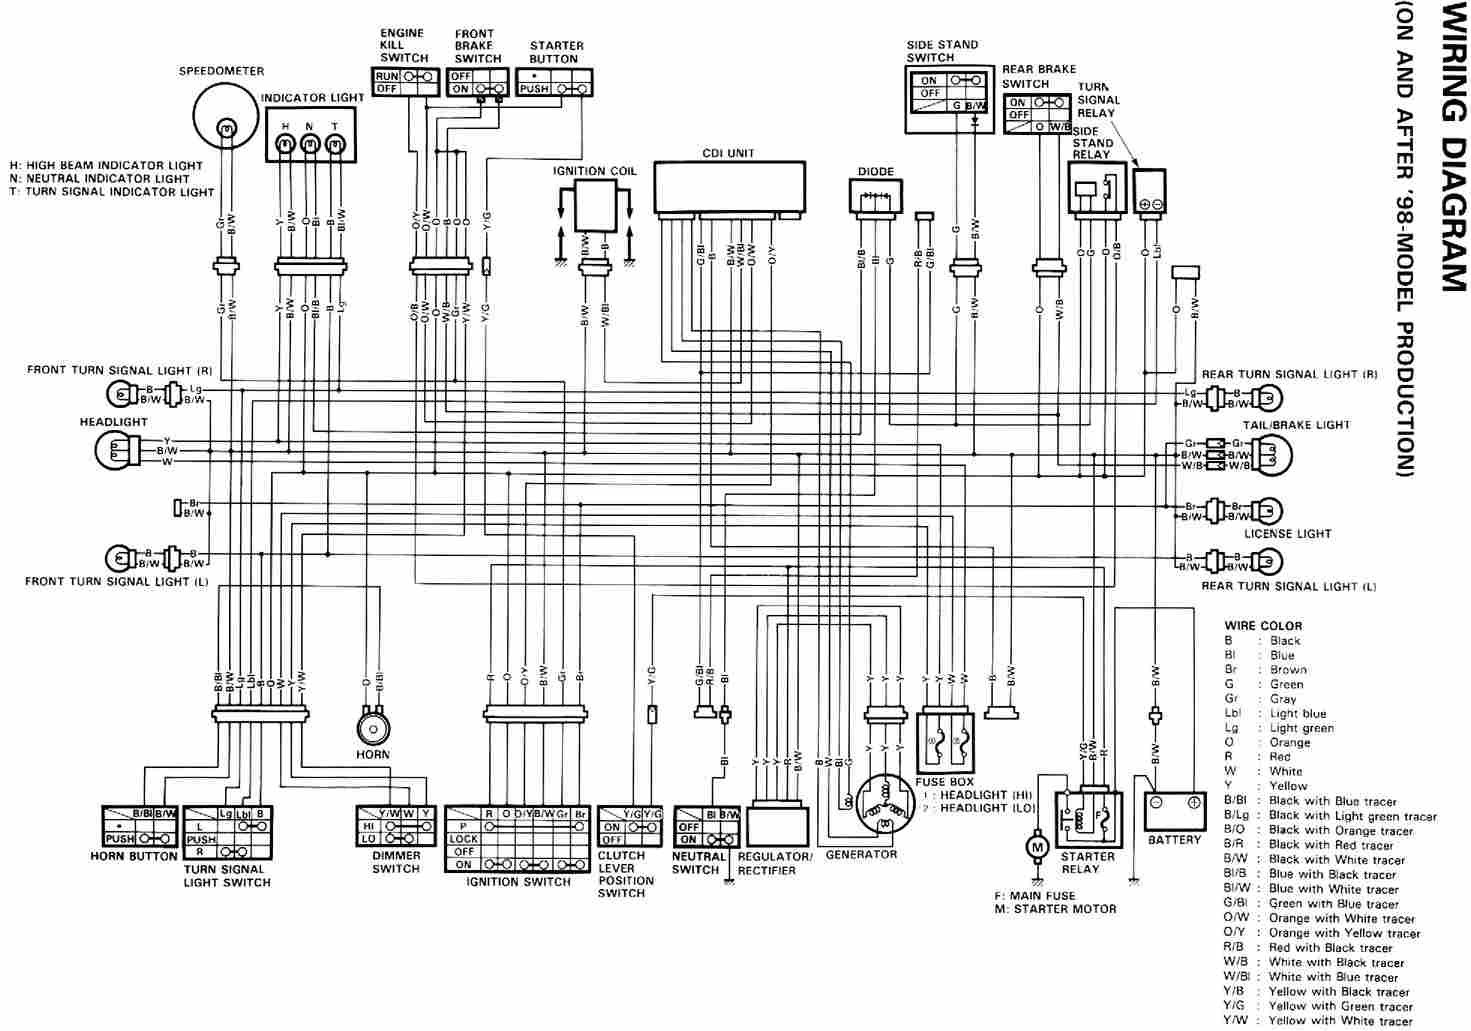 Captivating Suzuki Eiger 400 Battery Wiring Diagram Contemporary ...